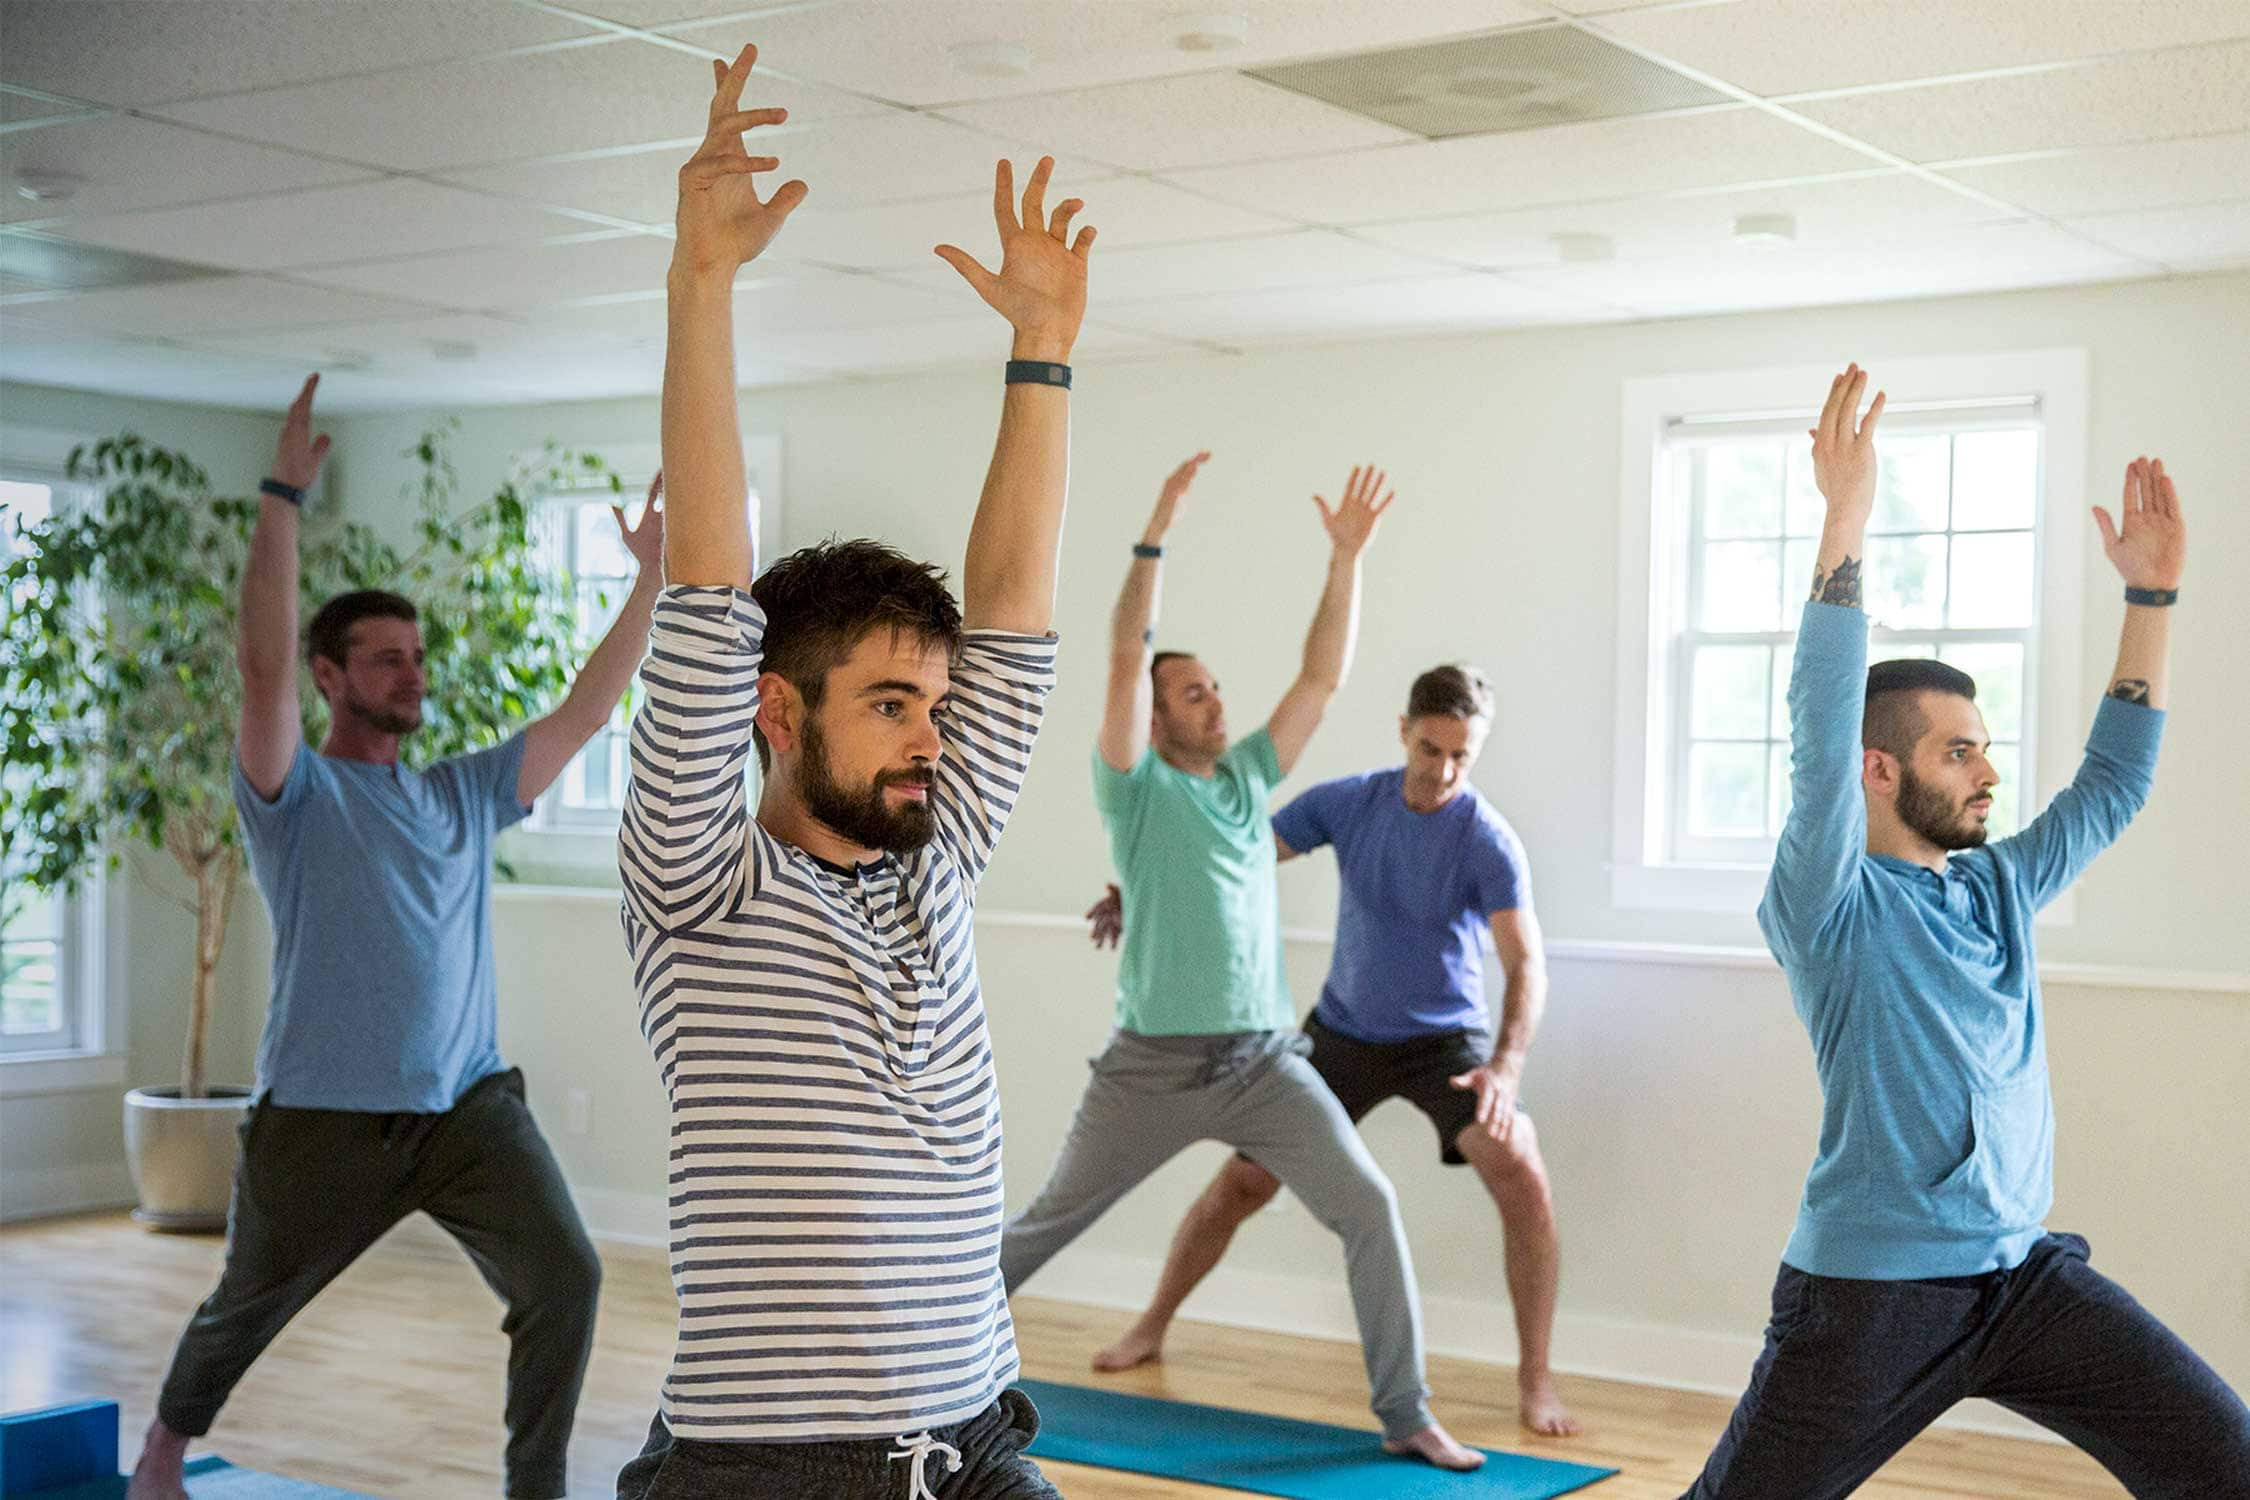 A group of men take a yoga class in bright room at Mountainside